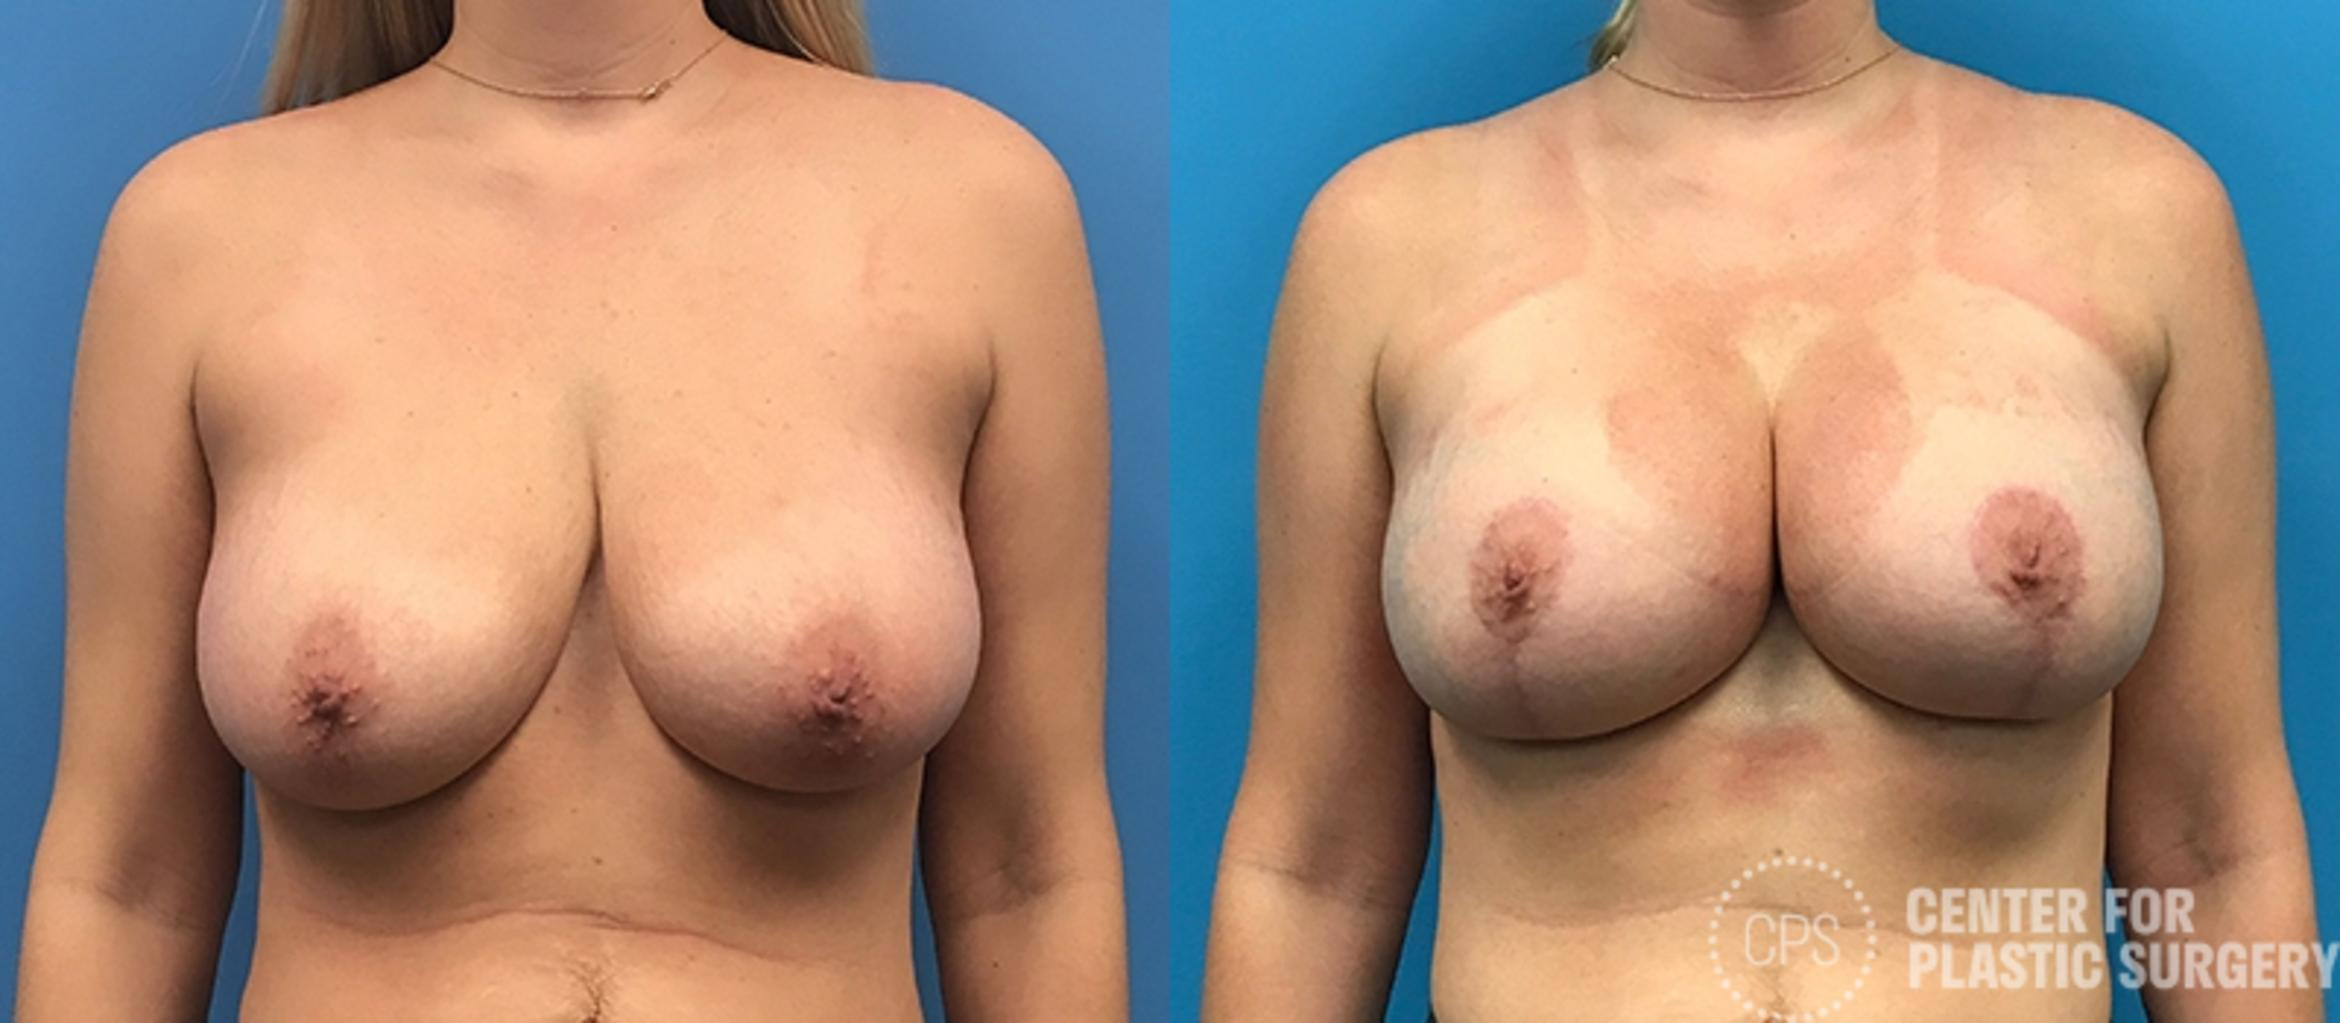 Breast Augmentation Case 115 Before & After Front | Annandale, VA & Chevy Chase, MD, Washington D.C. Metropolitan Area | Center for Plastic Surgery